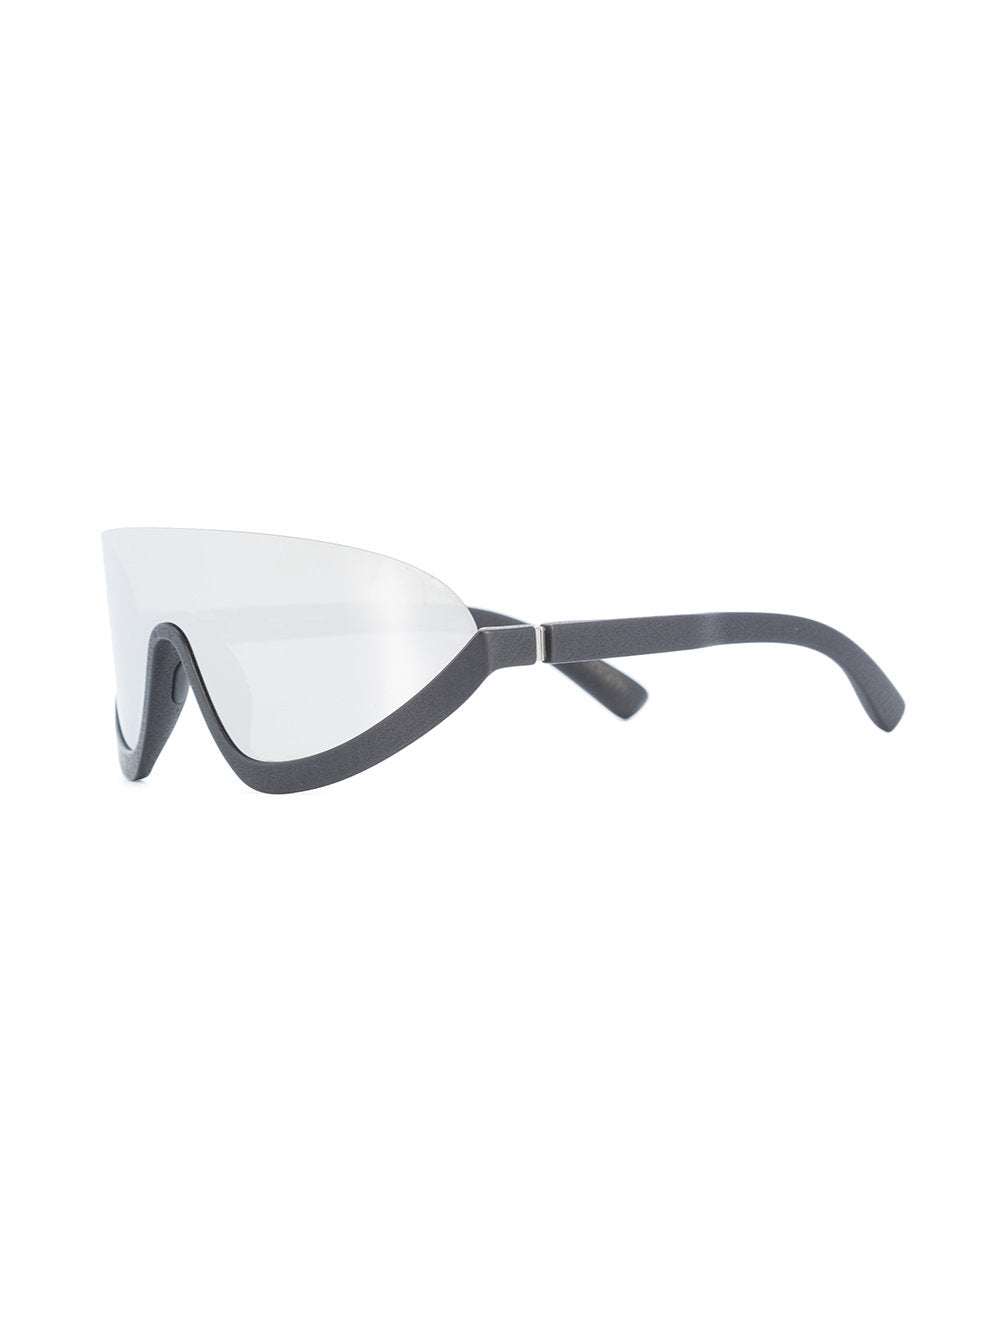 Mykita Mylon x Bernard Willhelm Blaze Sunglasses - 2